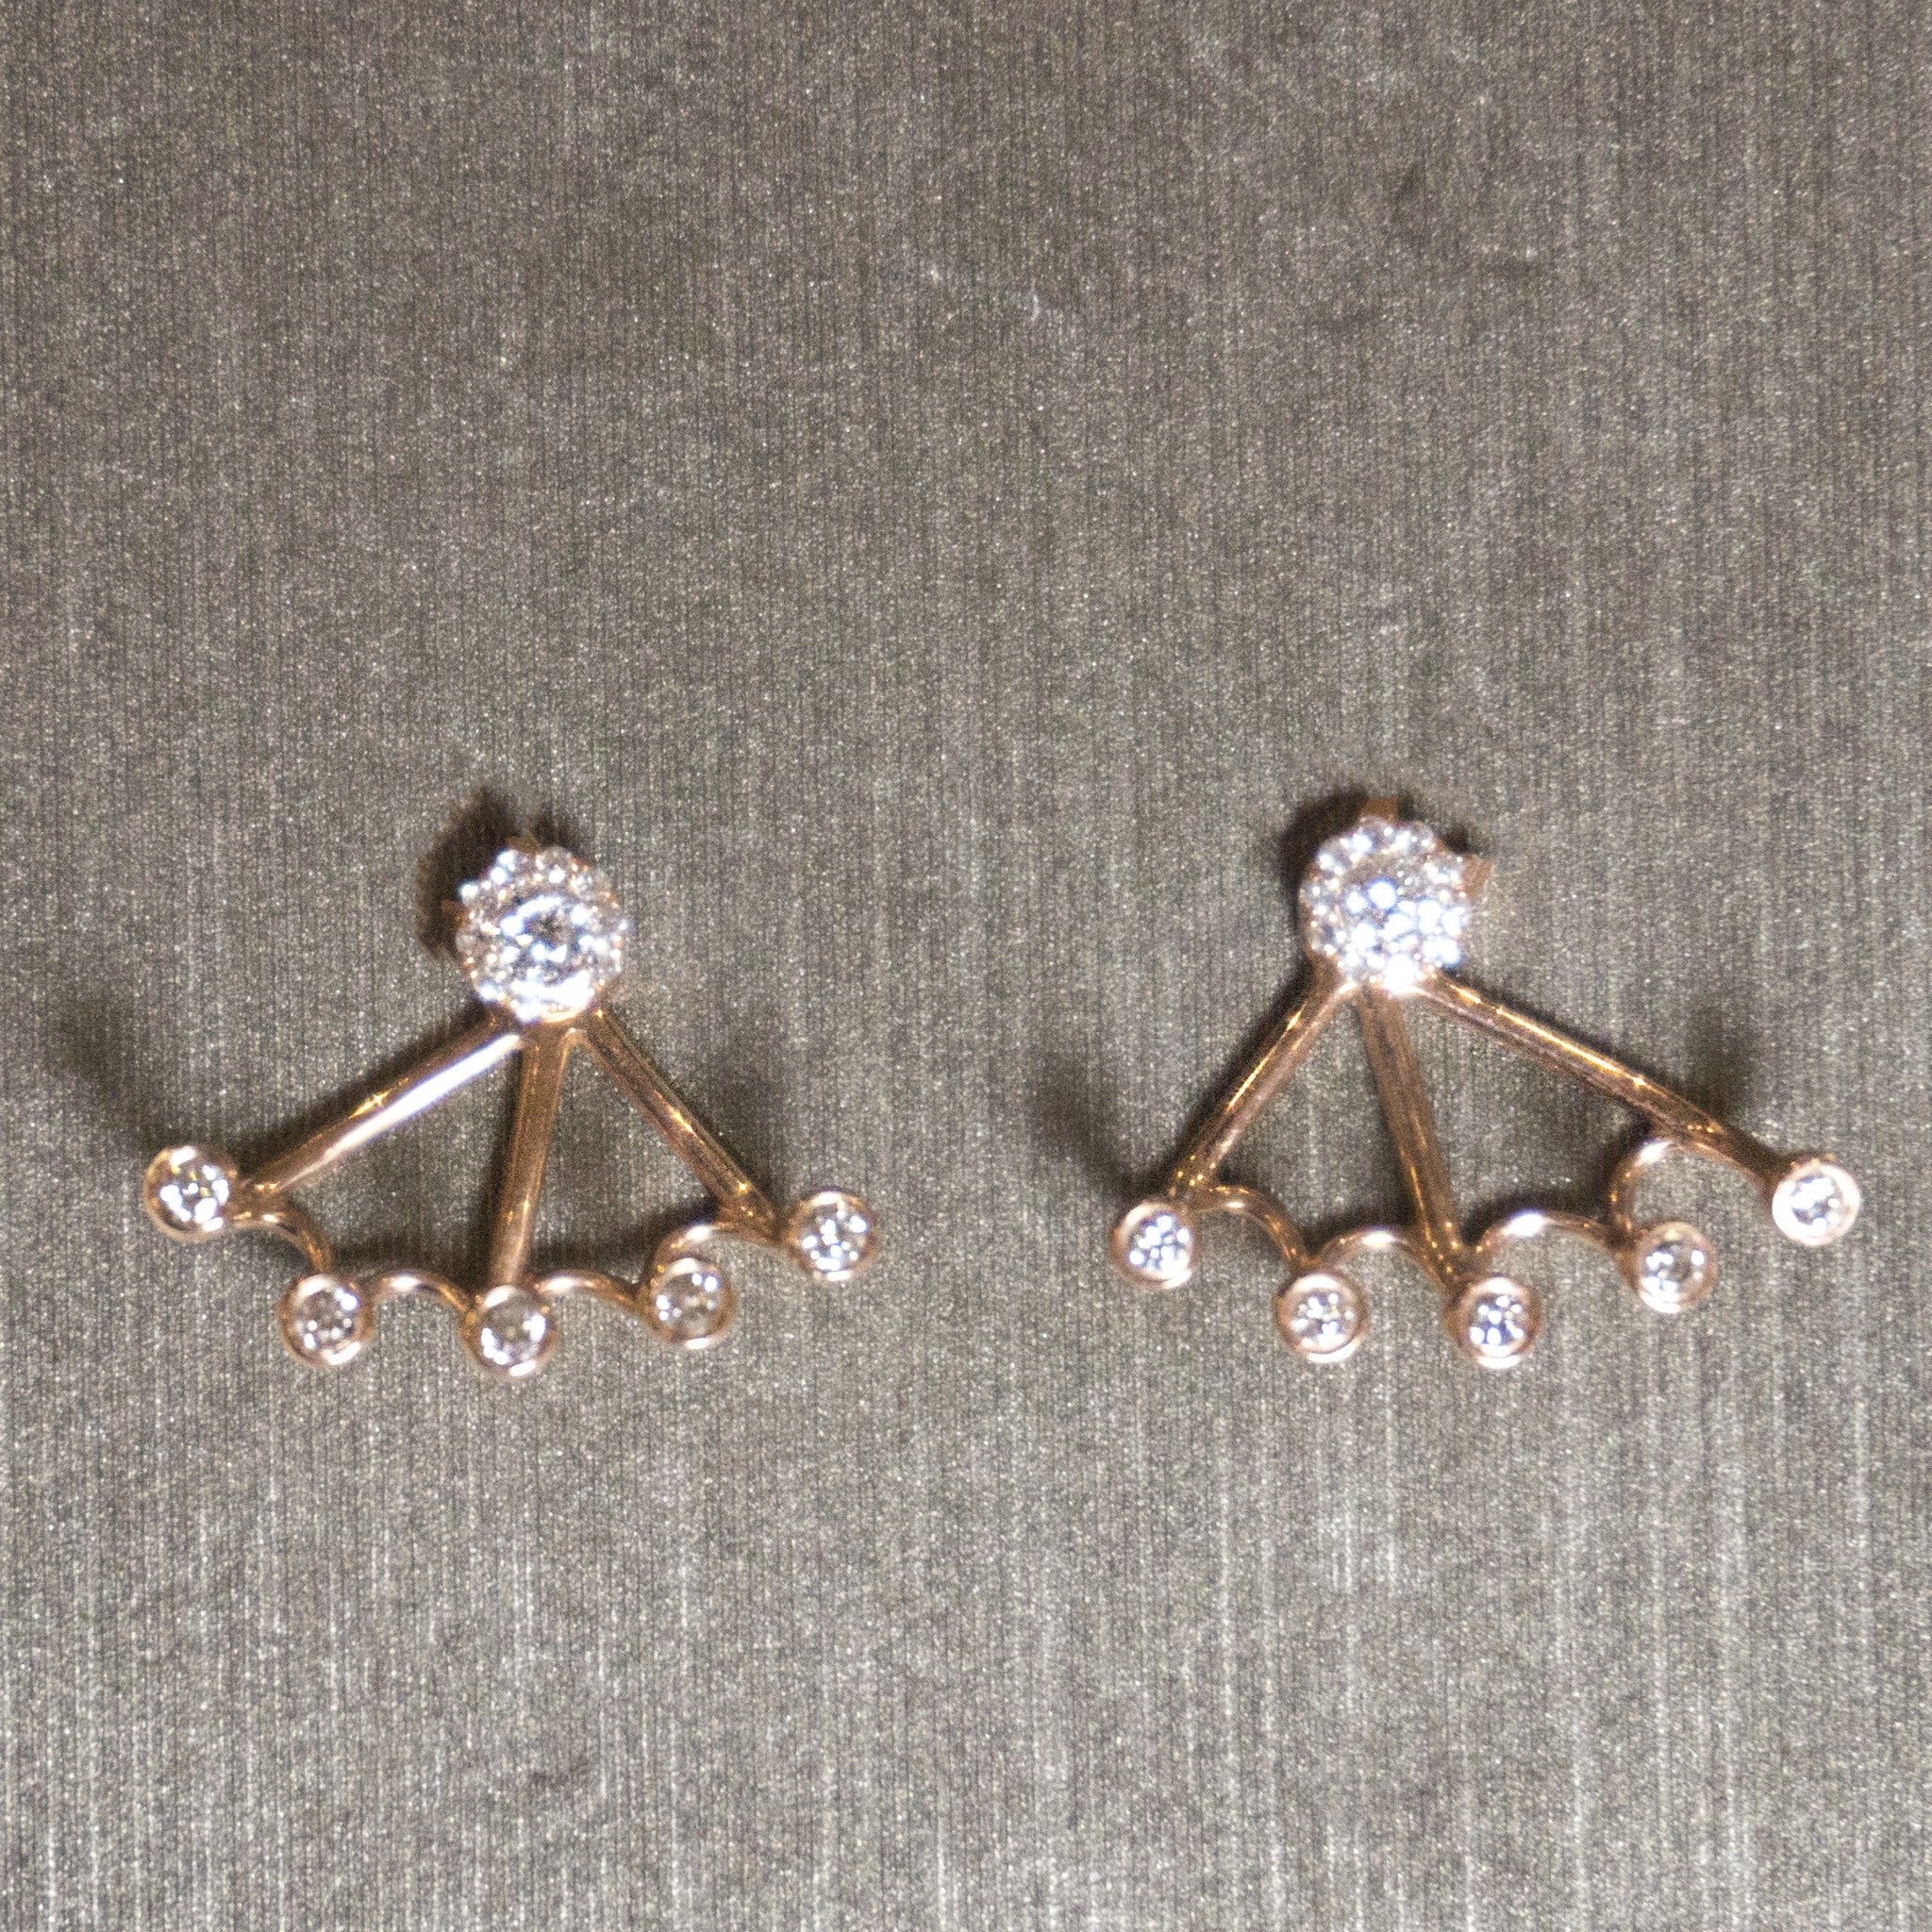 Rocks with Soul Diamond Studs with Cuff Backs